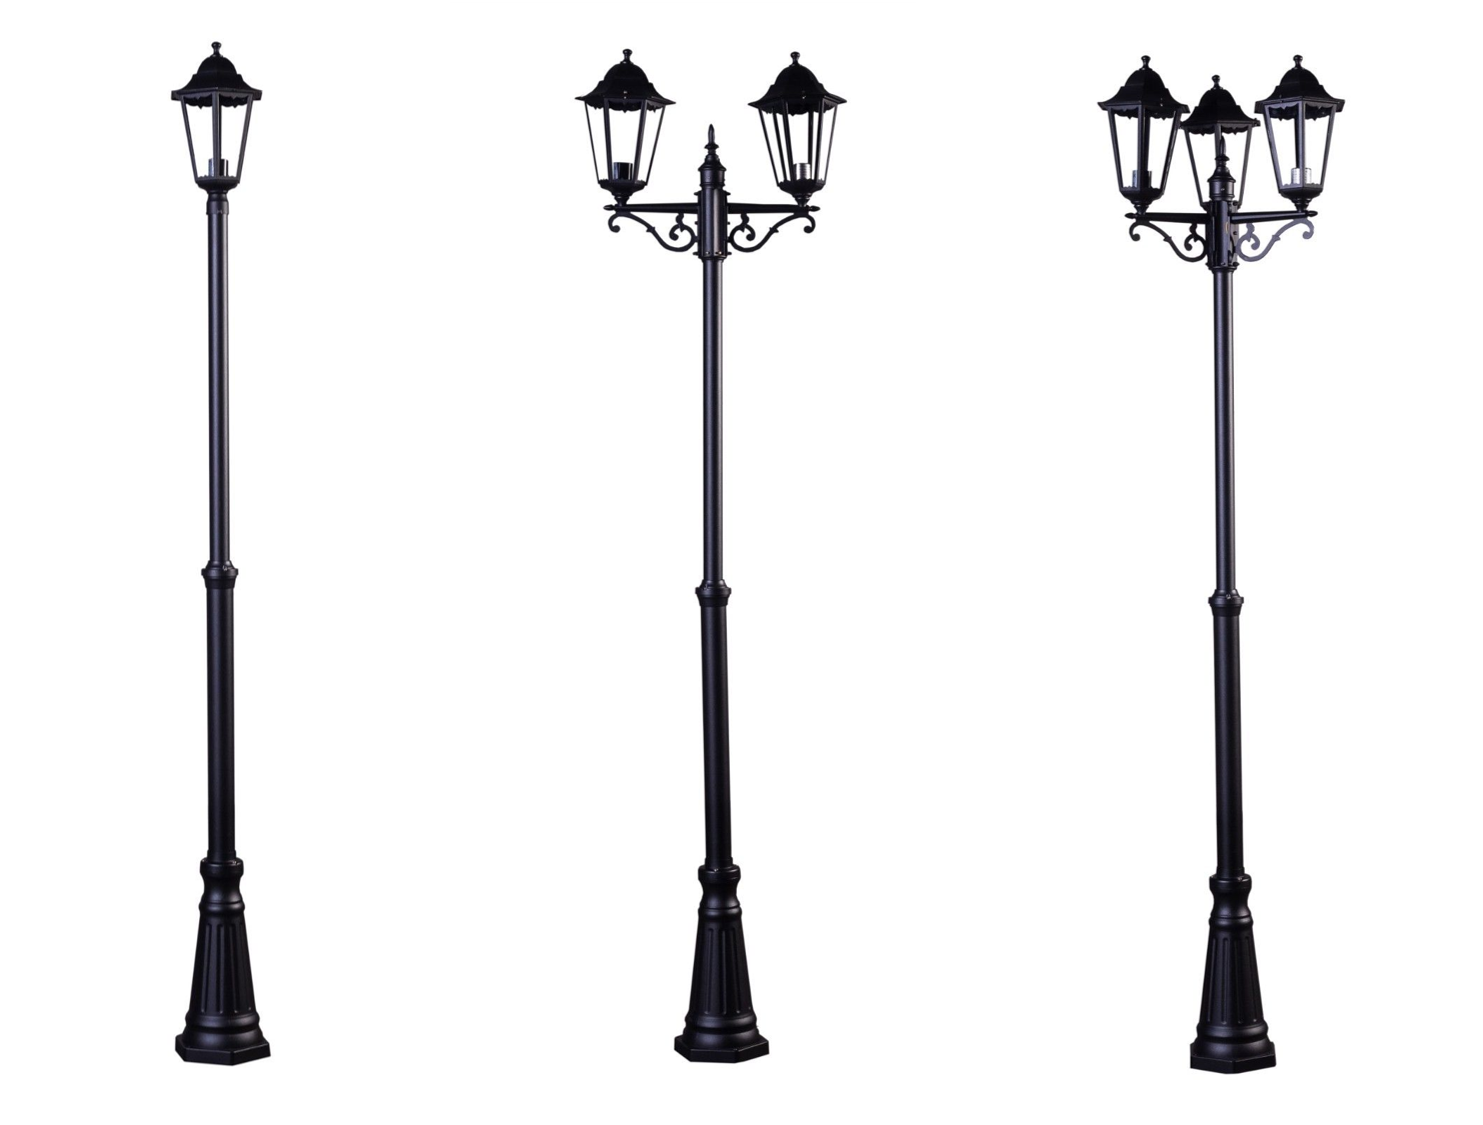 1.8M TRADITIONAL TWIN SOLAR LAMP POST LED LIGHT OUTDOOR GARDEN DRIVEWAY PATIO